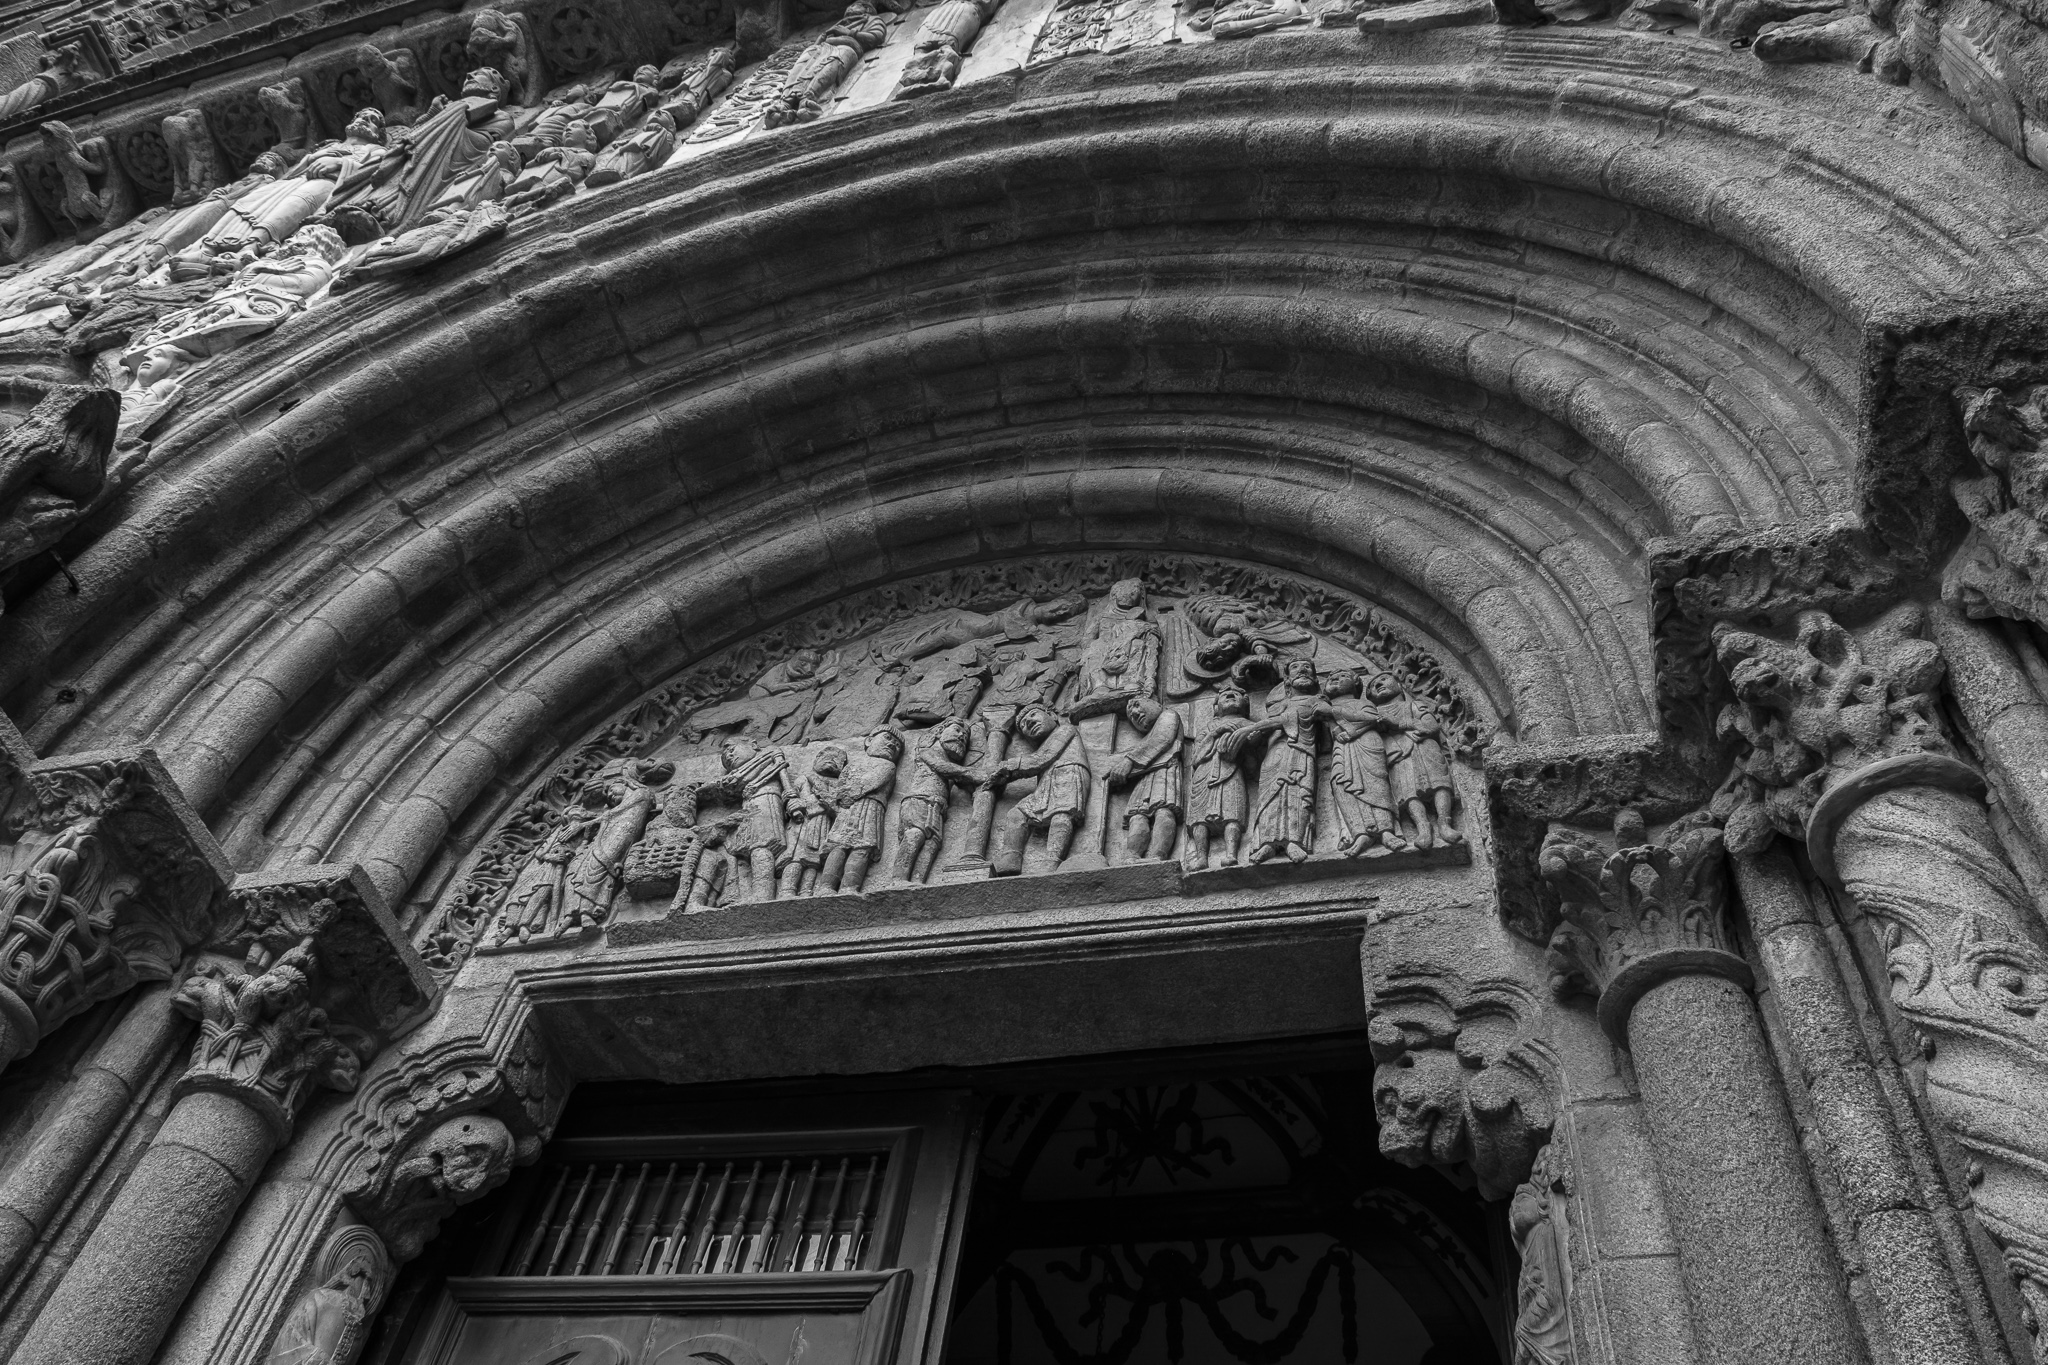 The facade of Platerías, southern door of the basilica, has two different entrances. <br>While the tympanum on the right-hand door shows several scenes of passion of Christ, such as judgment, entrapment, or flogging, the left tympanum symbolizes temptation, depicted in figures like the half-naked woman with a skull in her hands.<br> To the facade, which had to be rebuilt after a fire in the 13th century, figures were also added from the north door of the Cathedral.